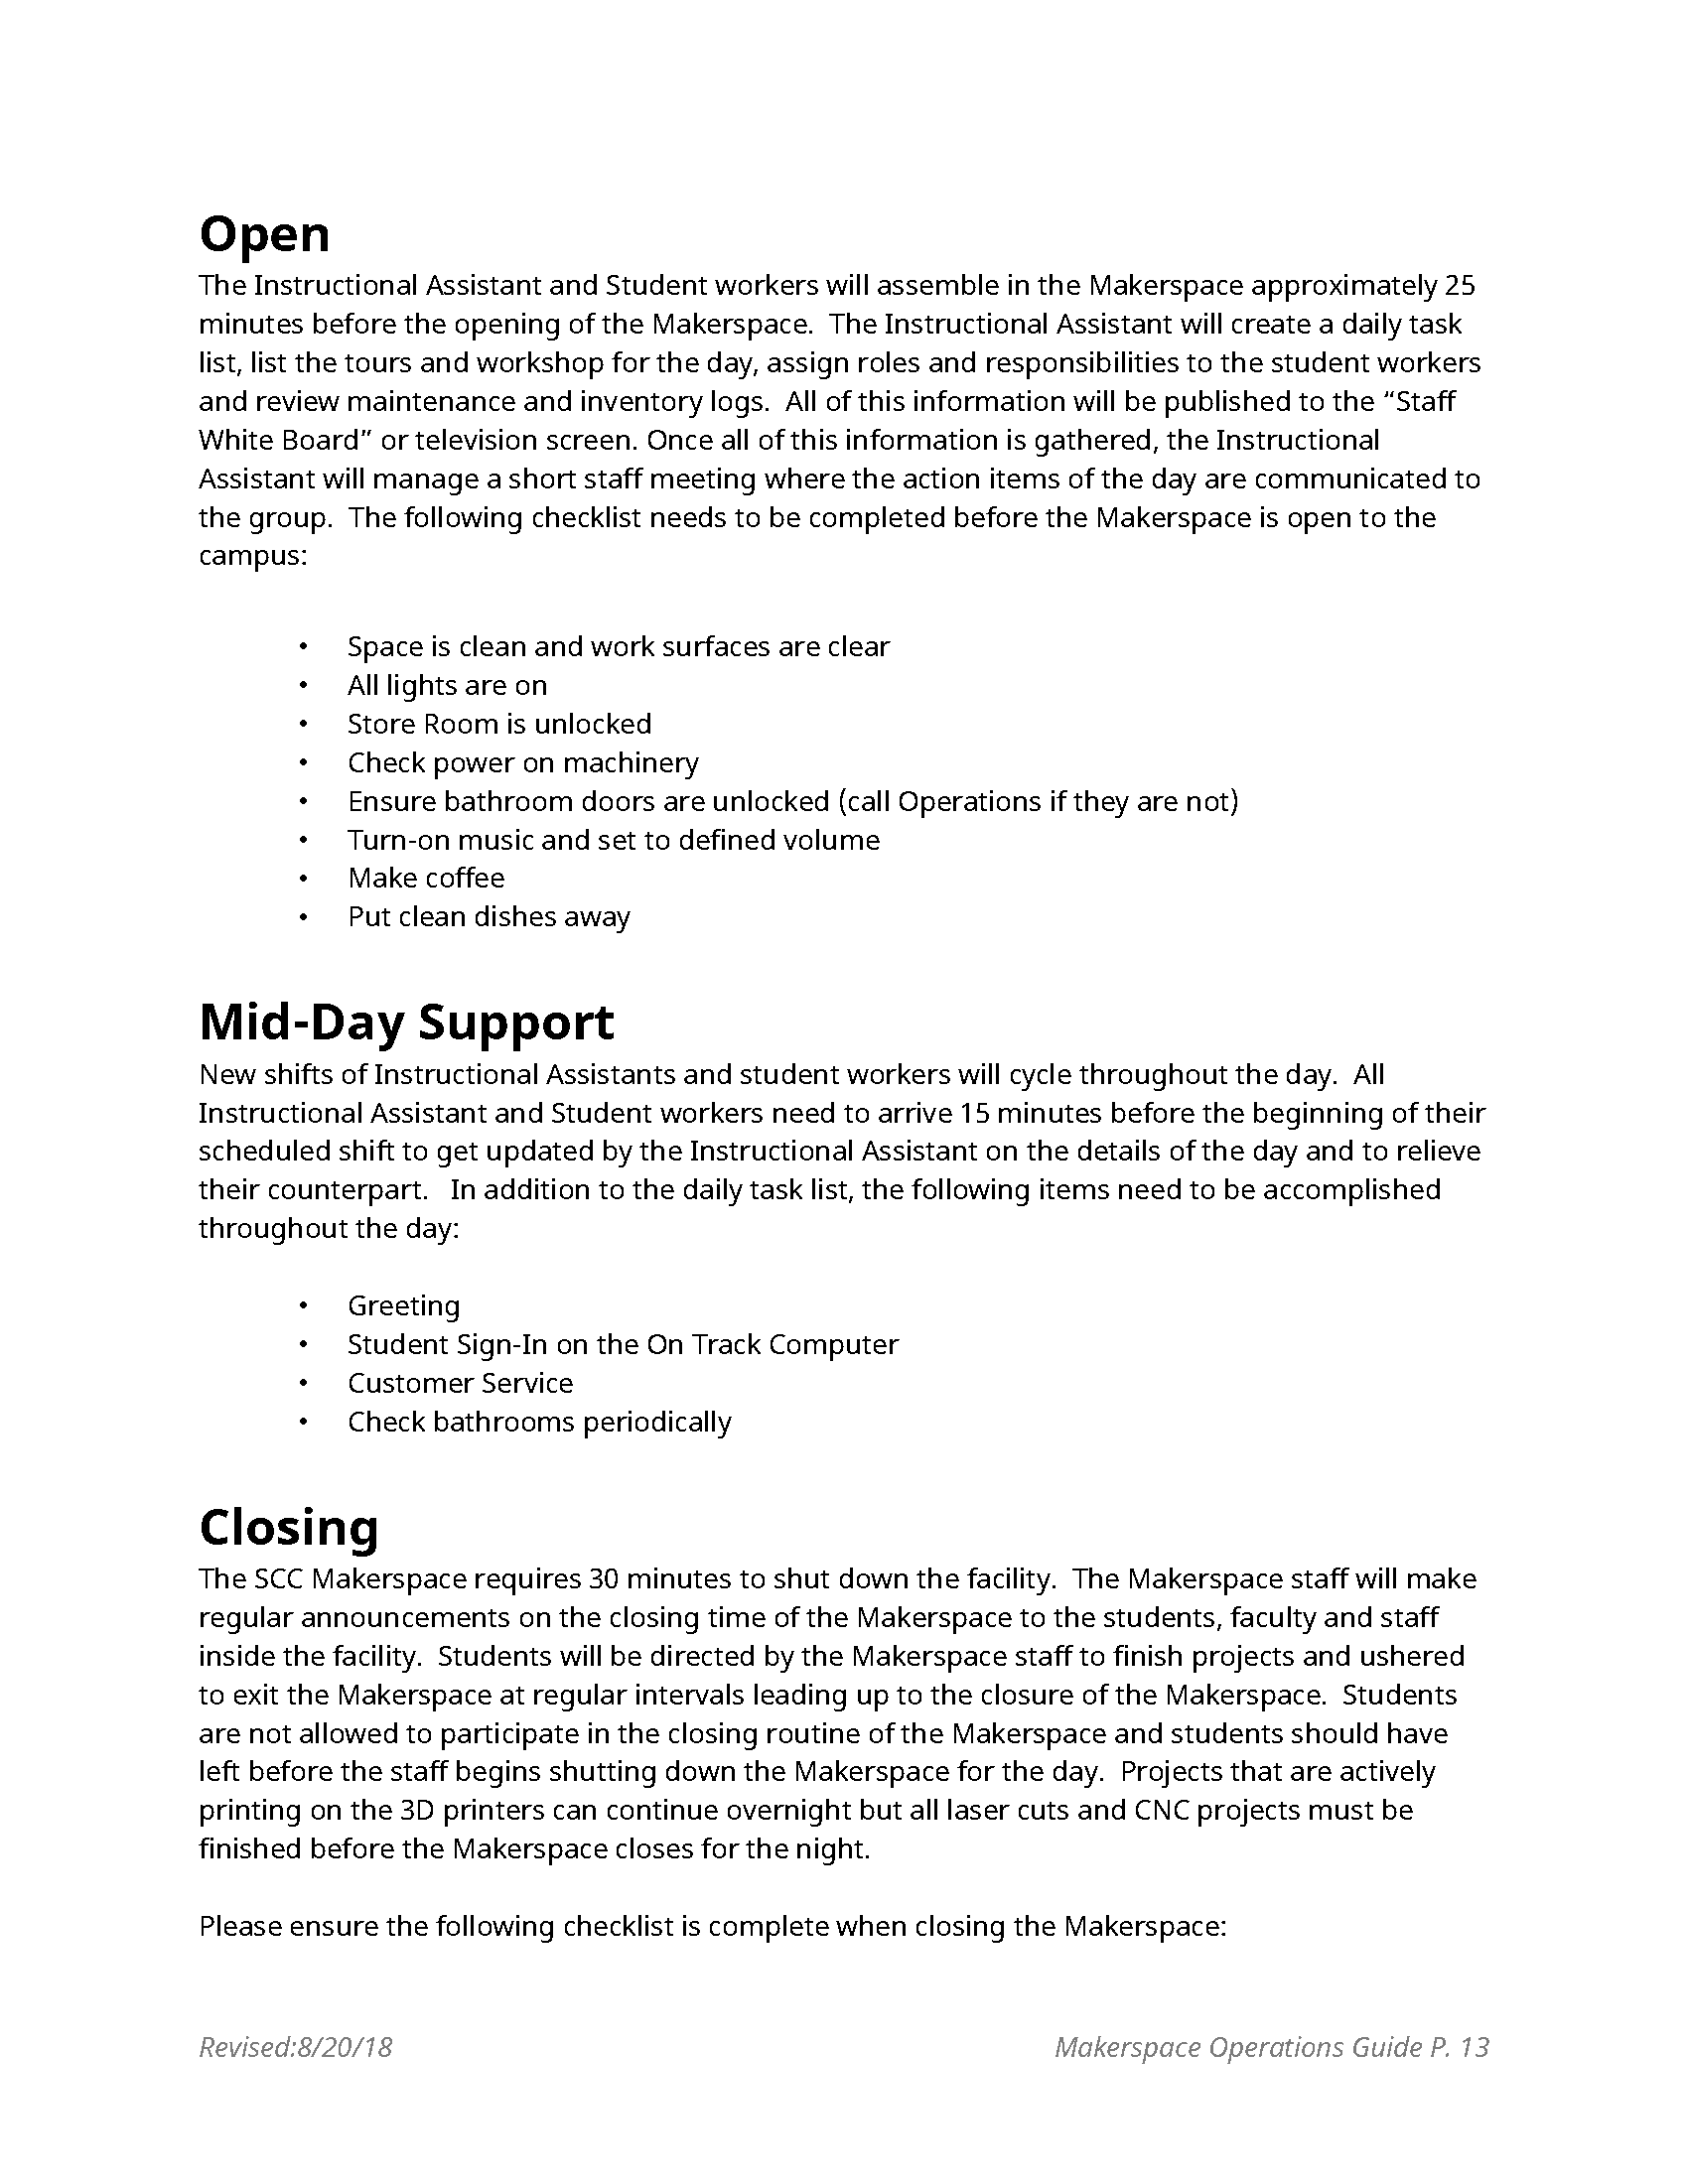 ms_ops_manual_8-20_Page_13.png